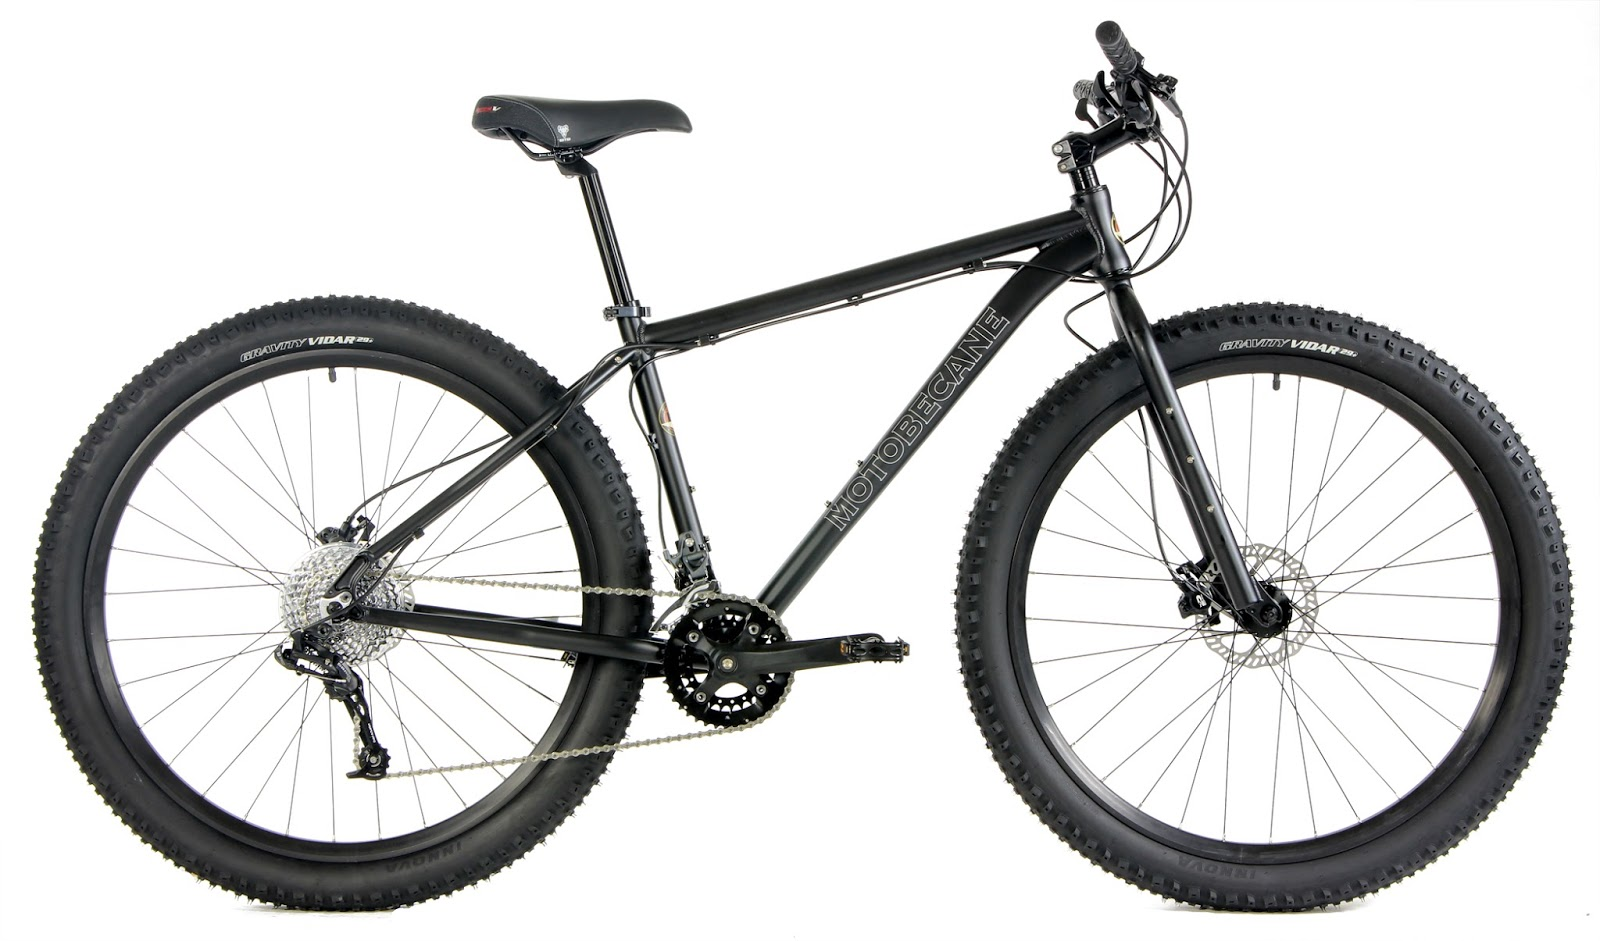 Dukes Moto Electric Motobecane Mountain Bike 29 Plus X5